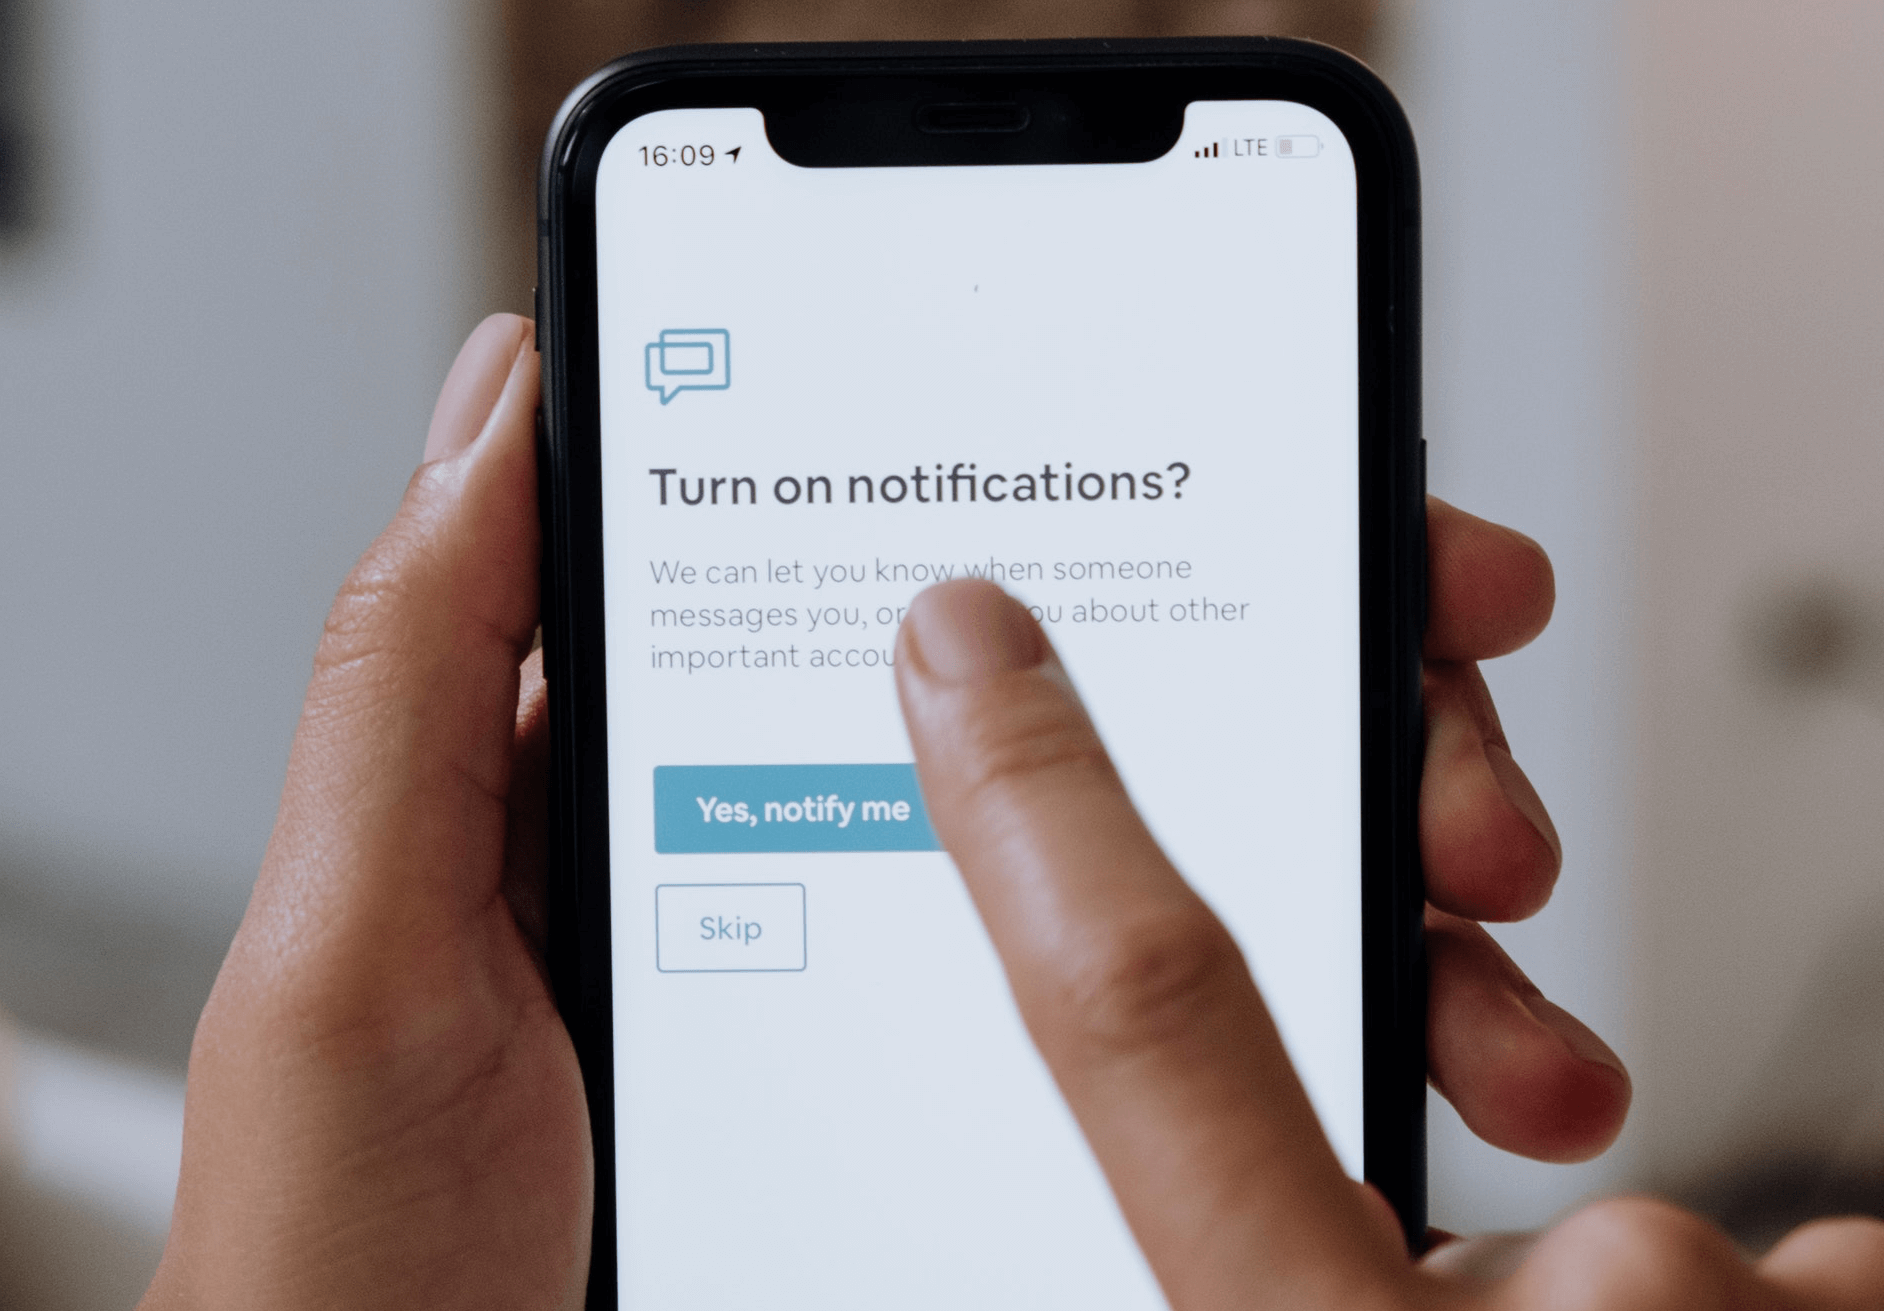 Turning off phone notifications to save time